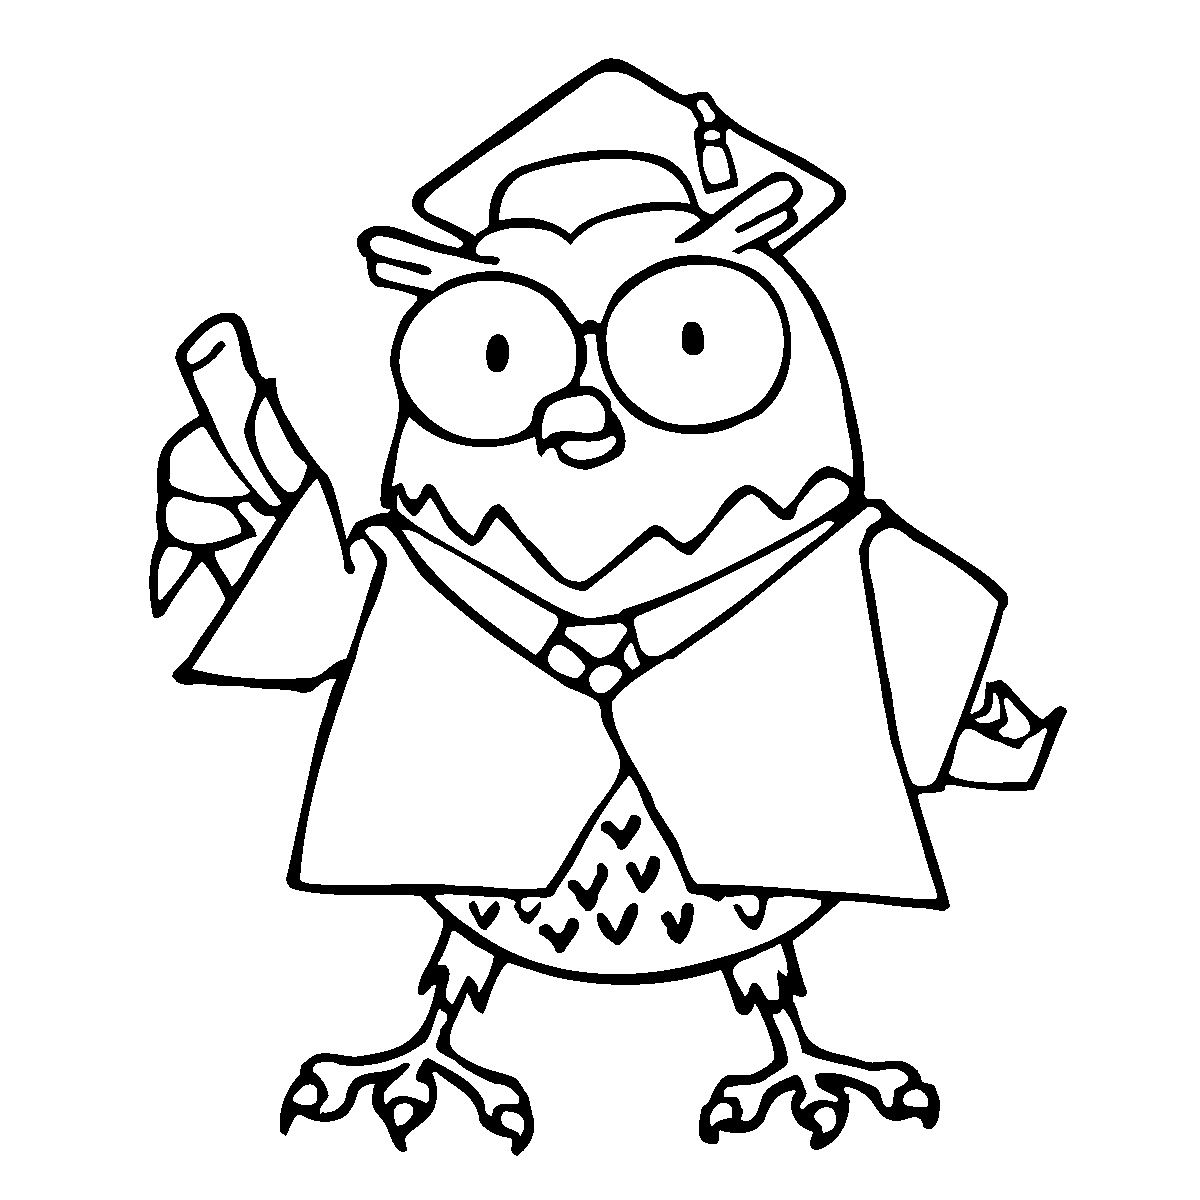 Wise owl clipart black and white image library Clip Art: Cartoon Professor | Clipart Panda - Free Clipart ... image library